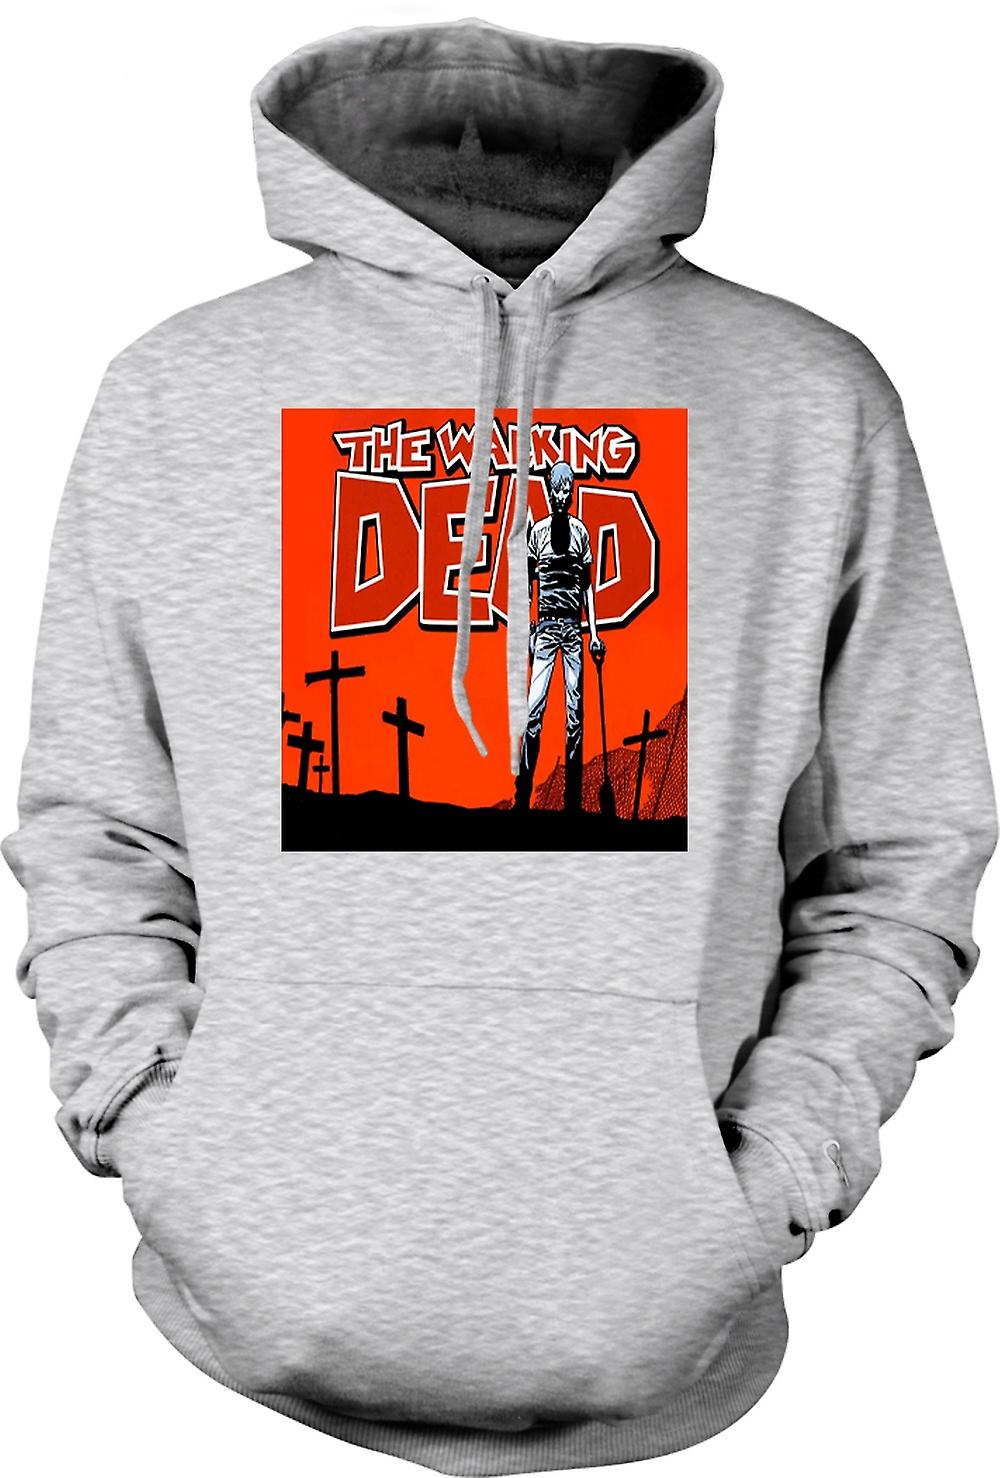 Mens Hoodie - Zombie The Walking Dead - Horror